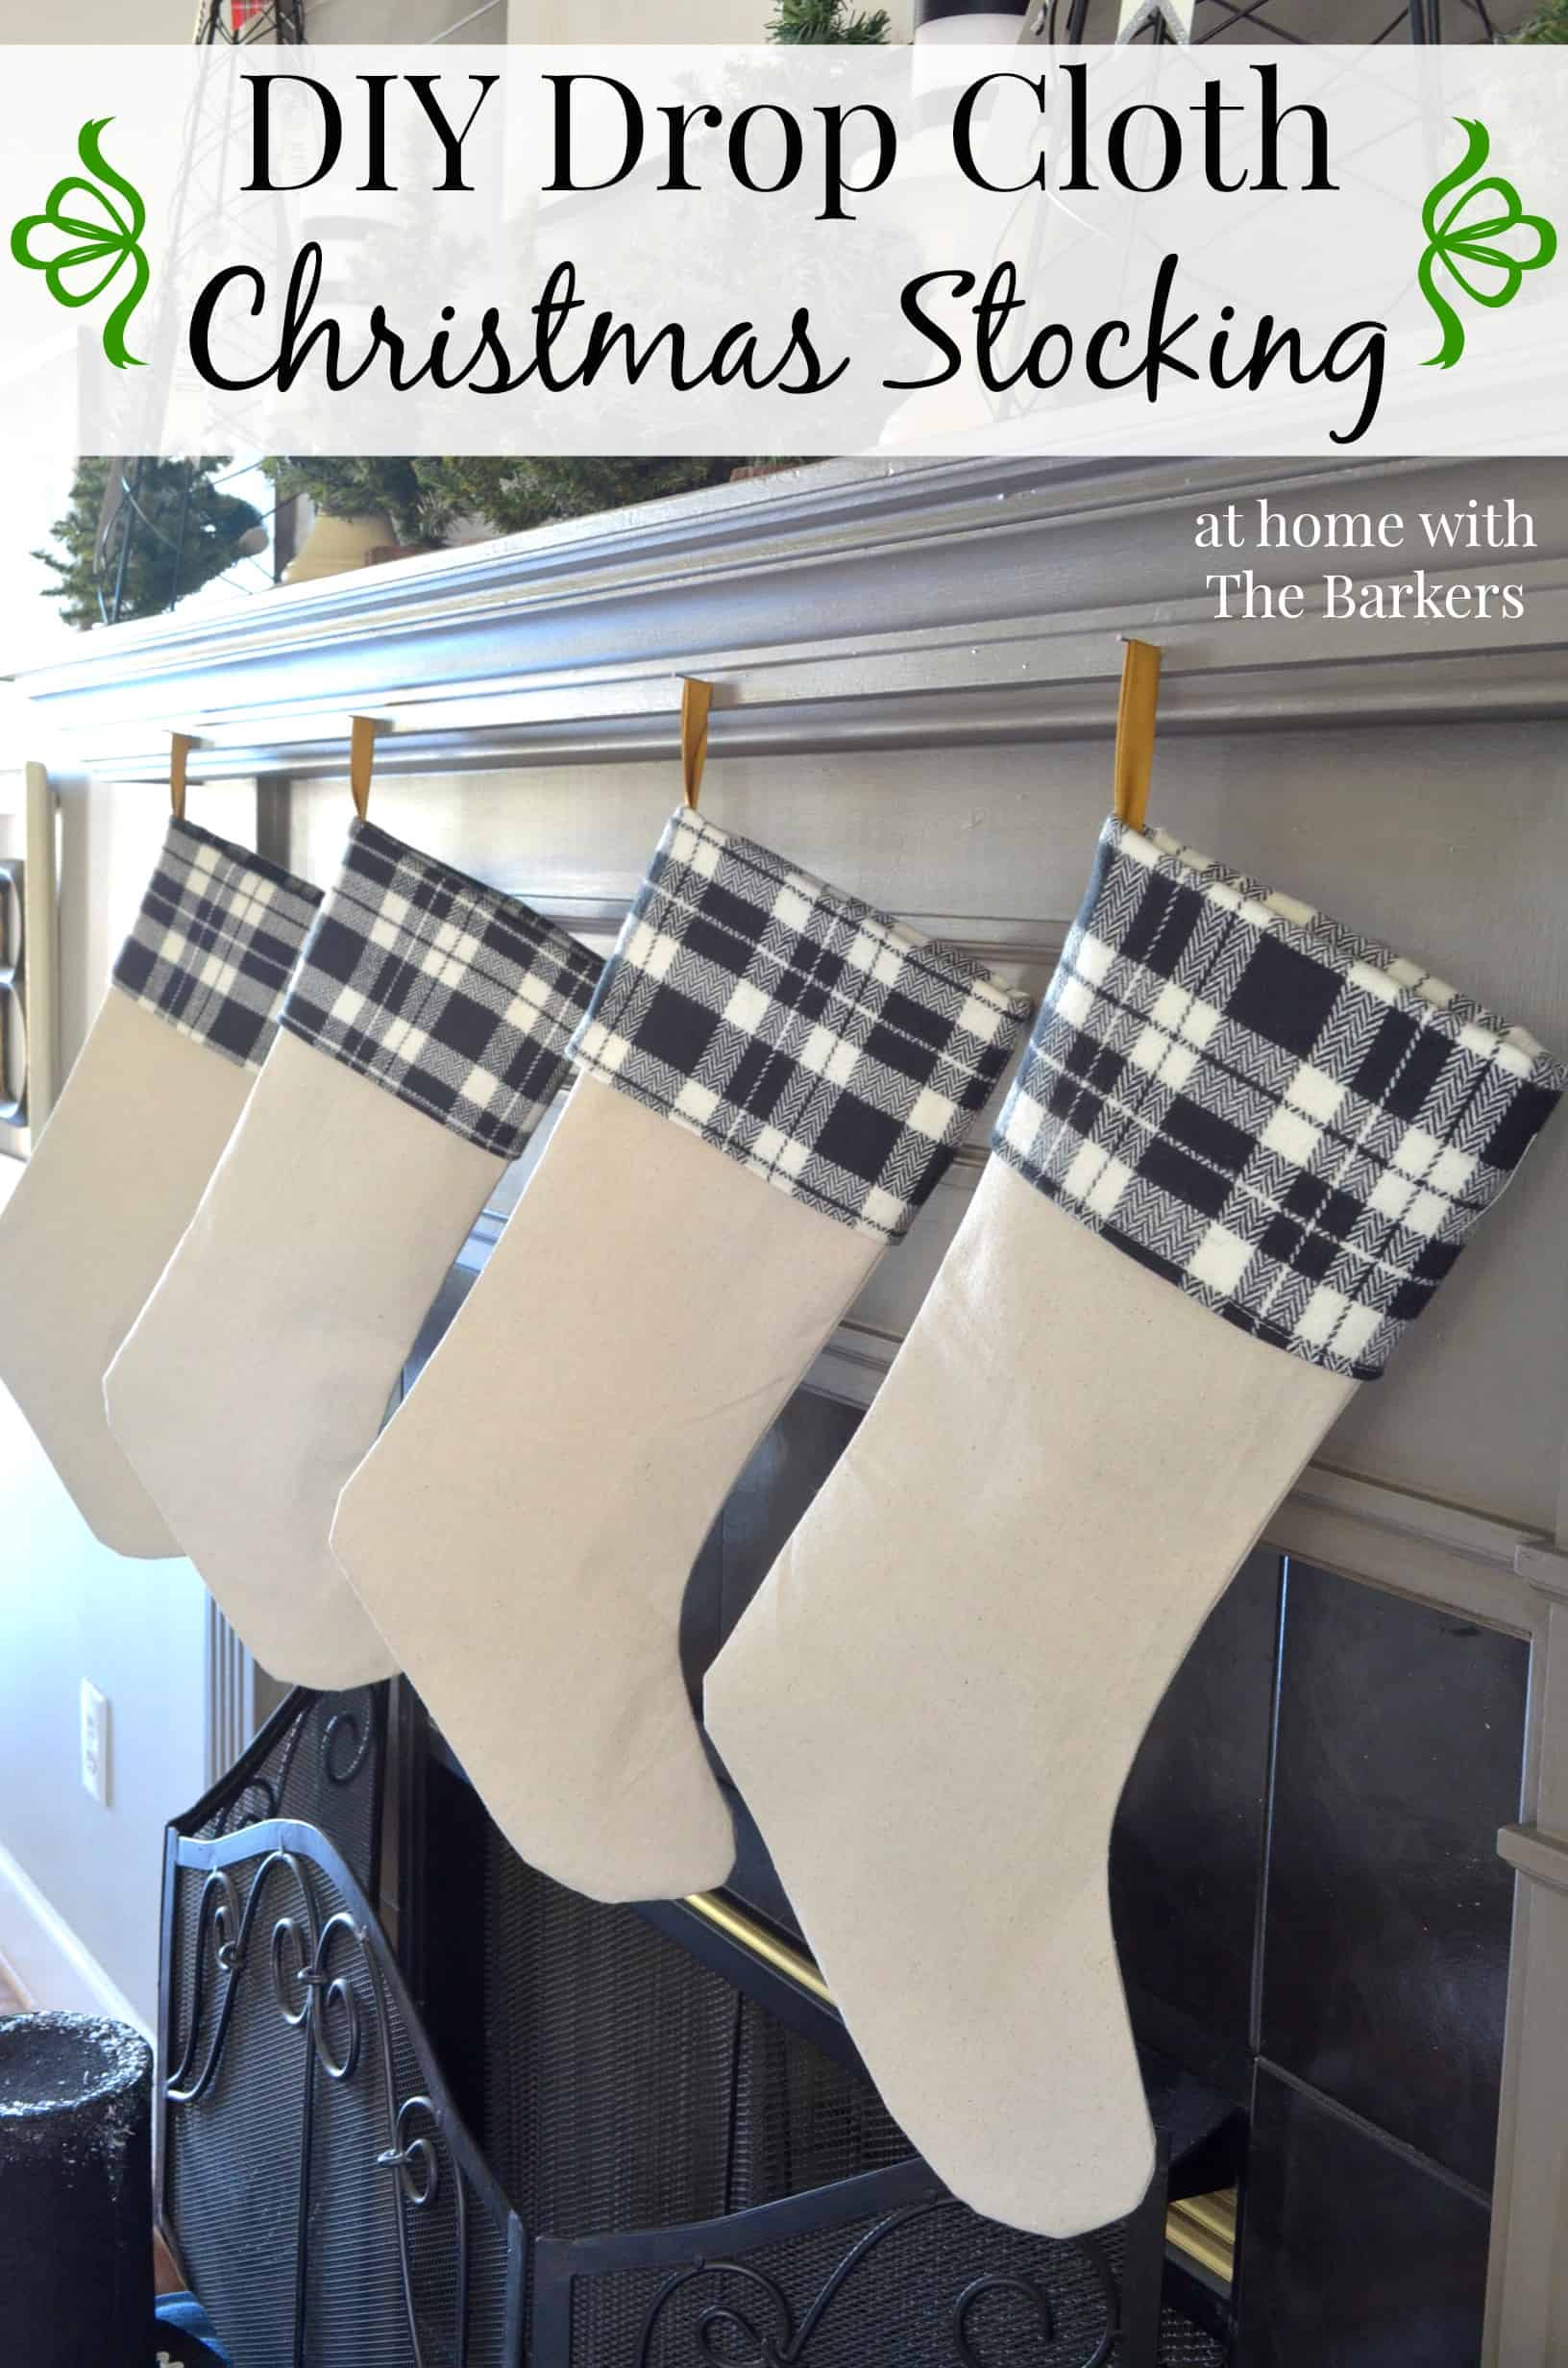 DIY Drop Cloth Christmas Stocking